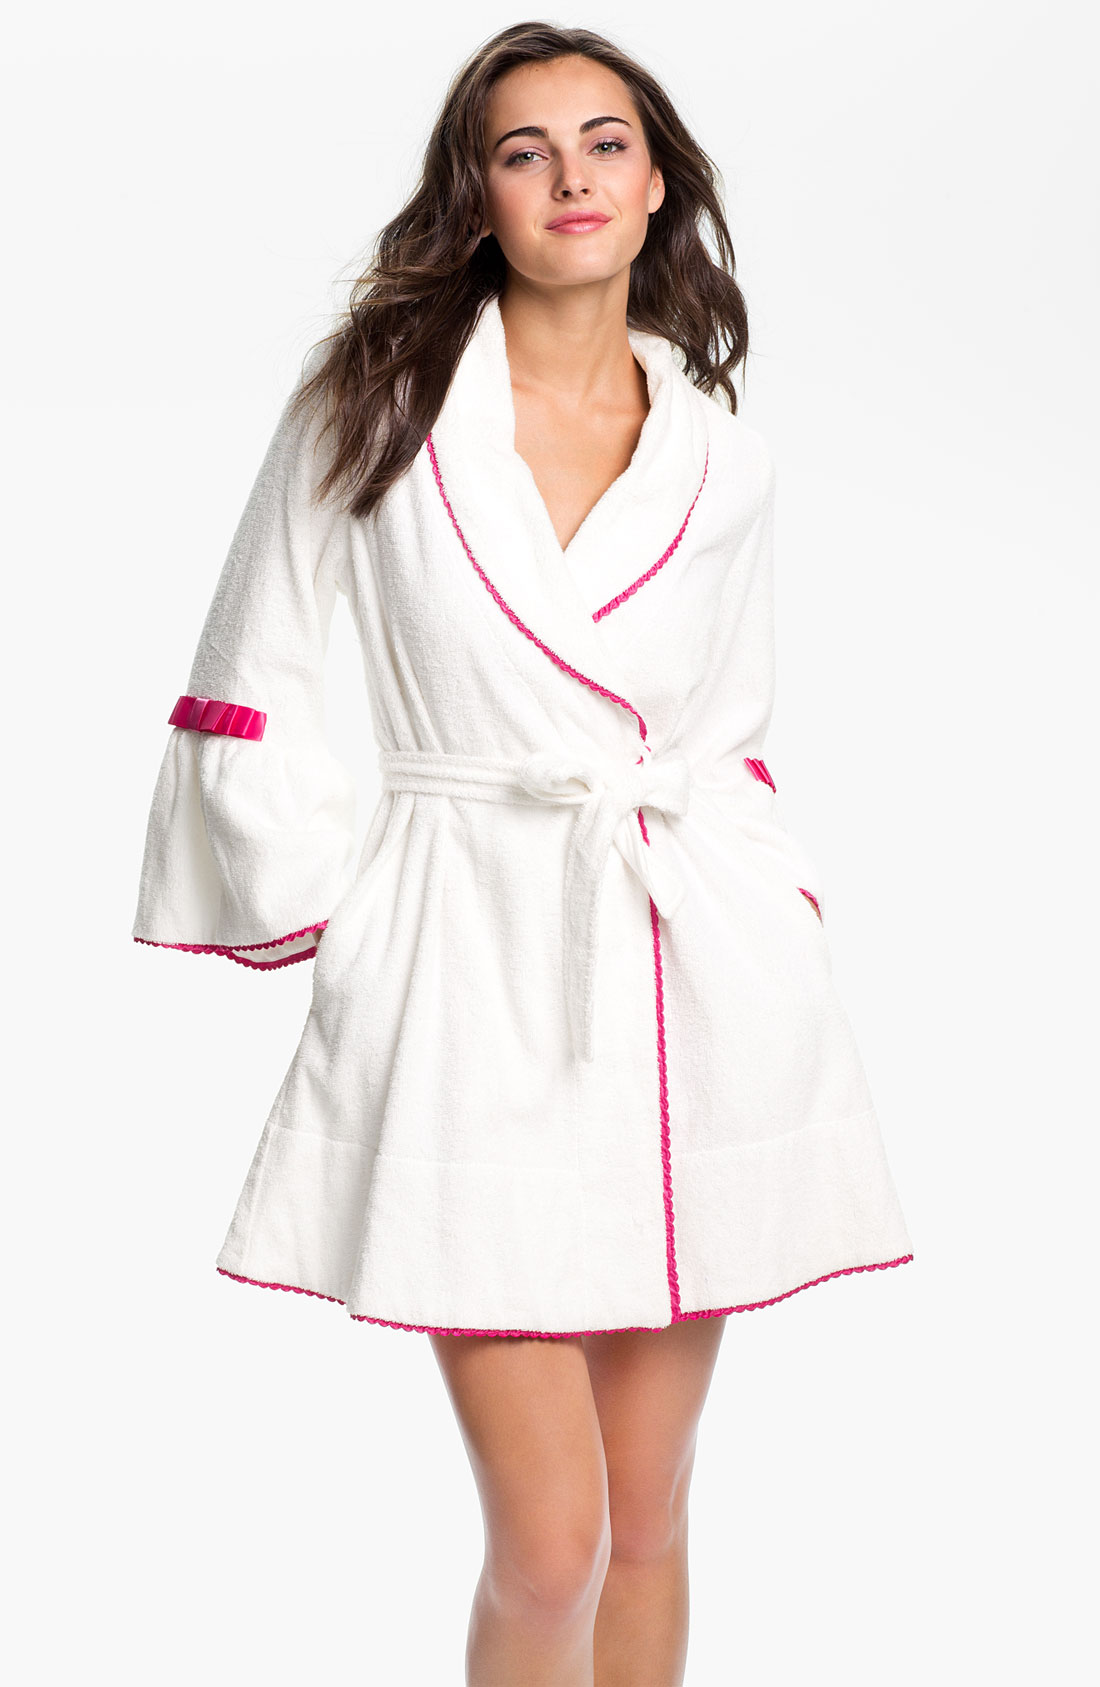 Betsey johnson minnie terry robe in white lyst for Robes de mariage de betsey johnson